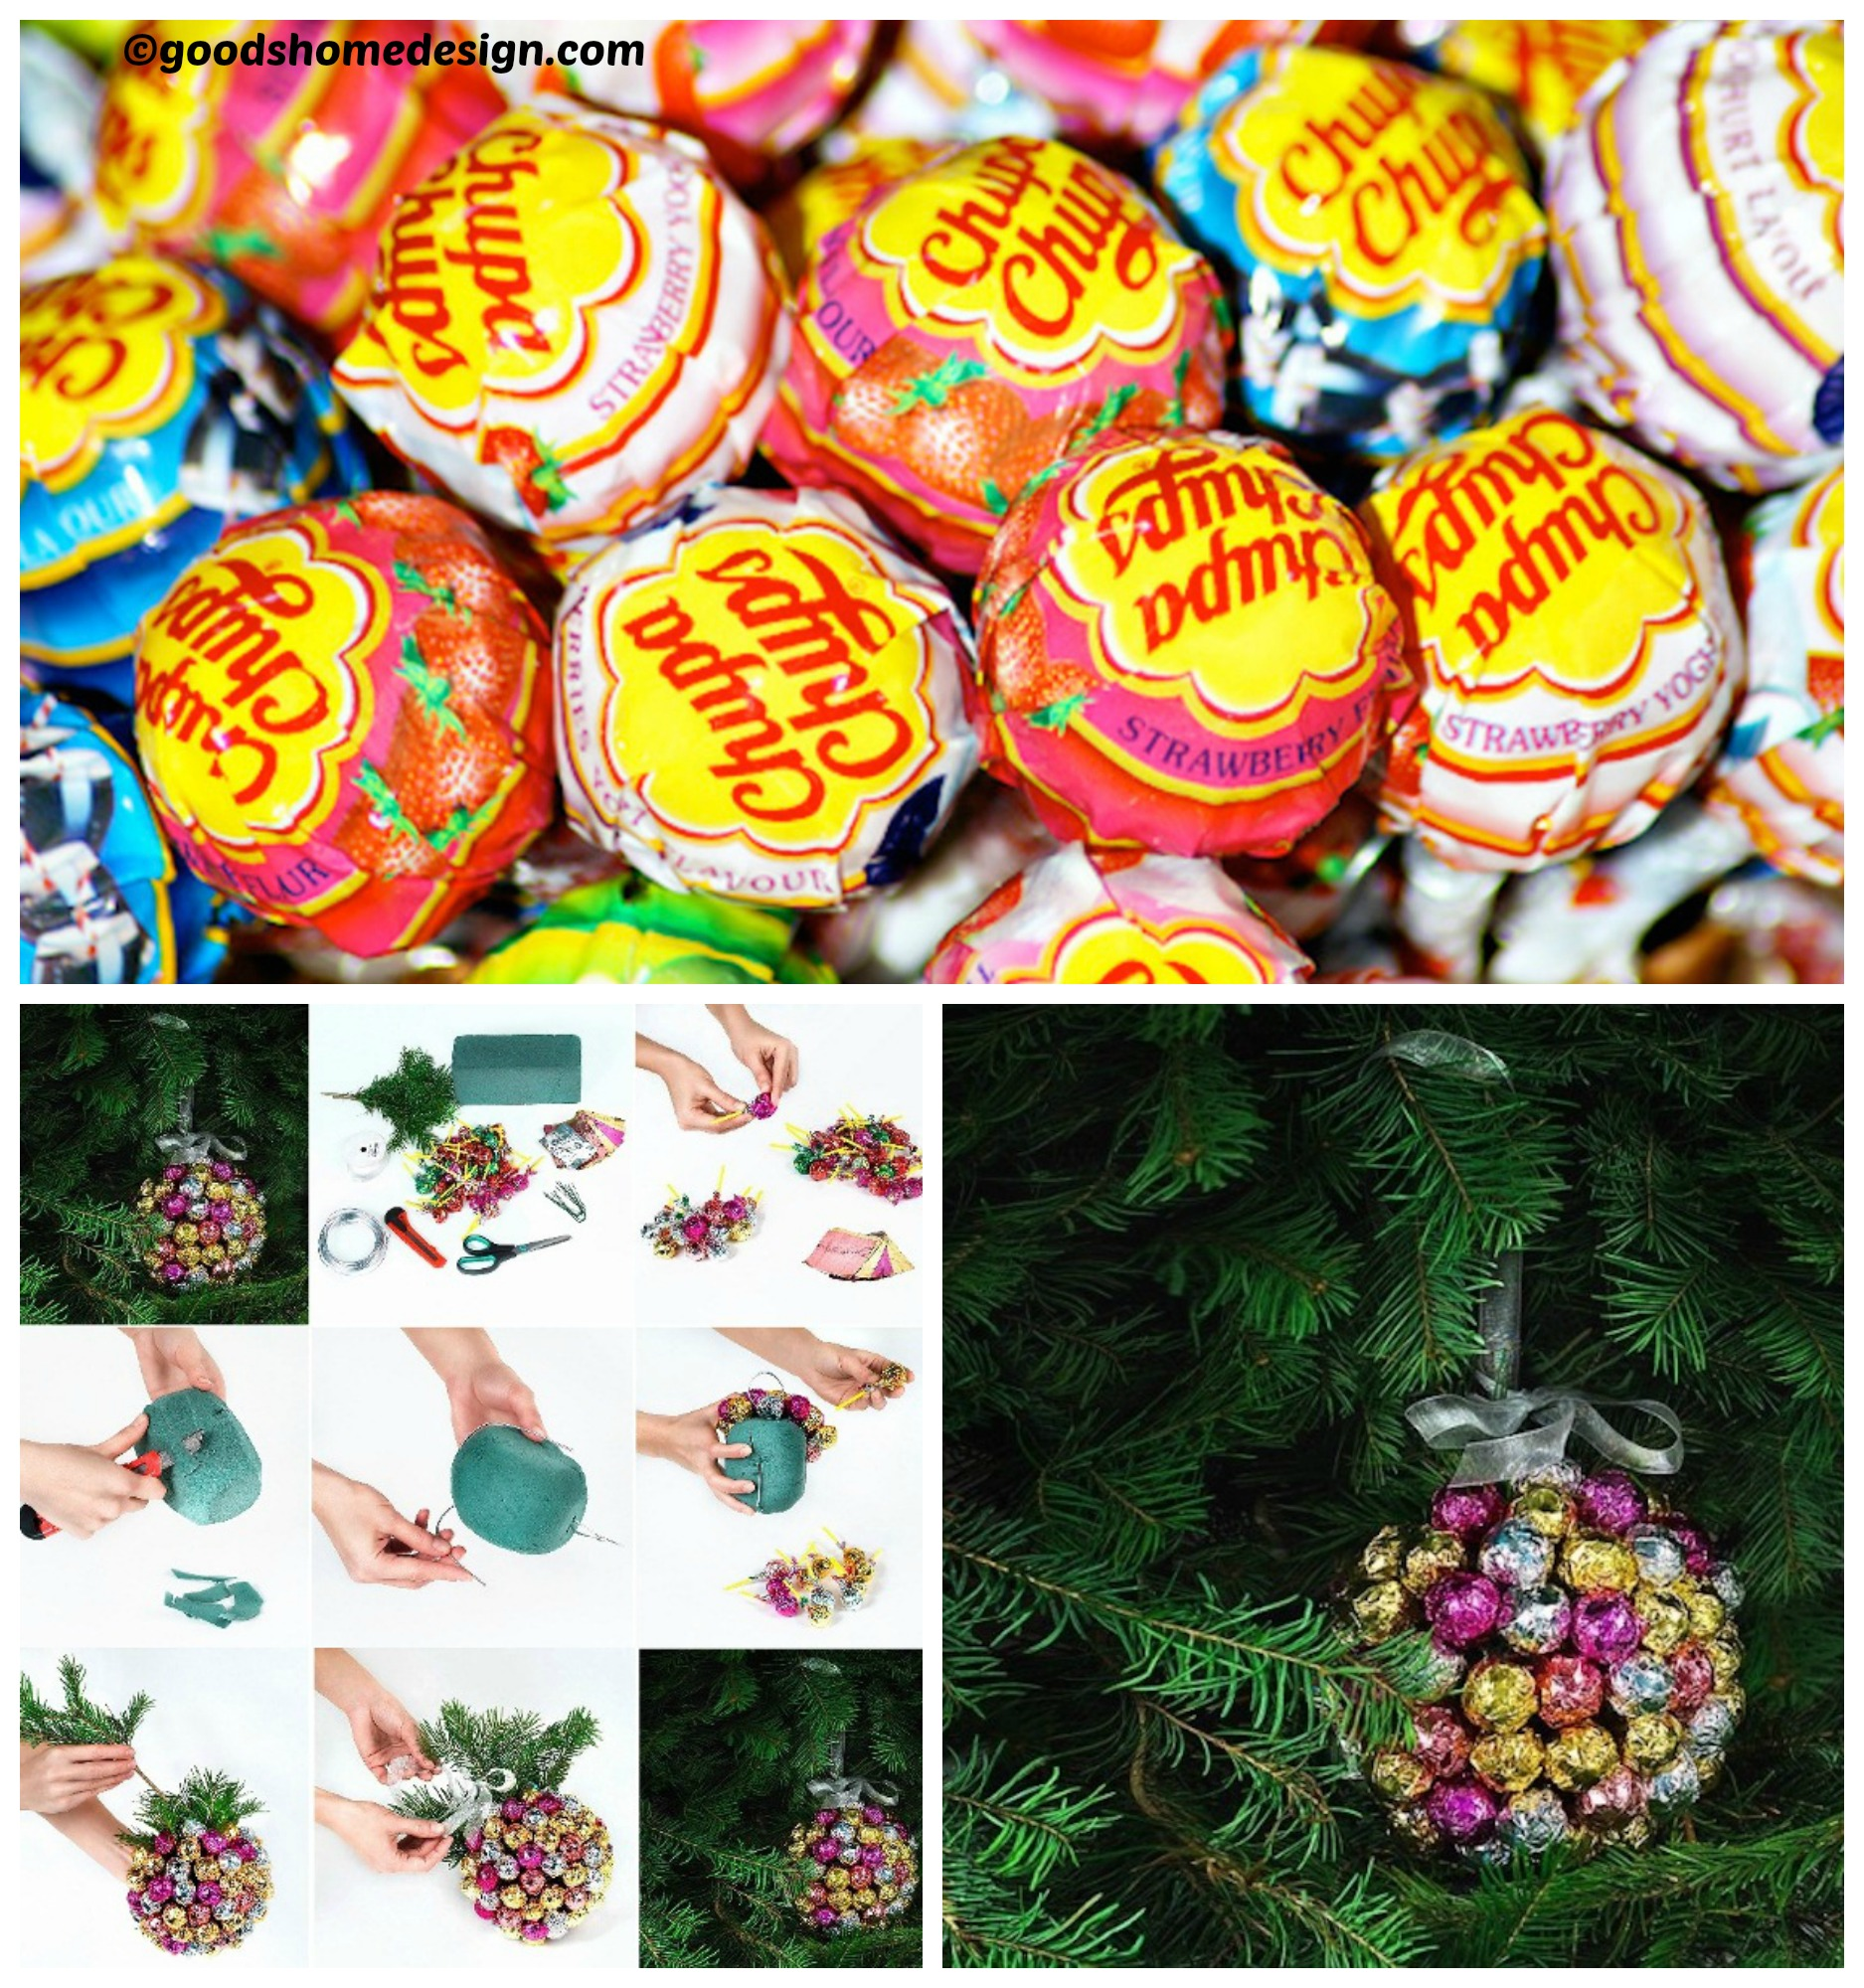 How to make a DIY Christmas Chupa Chups Decoration